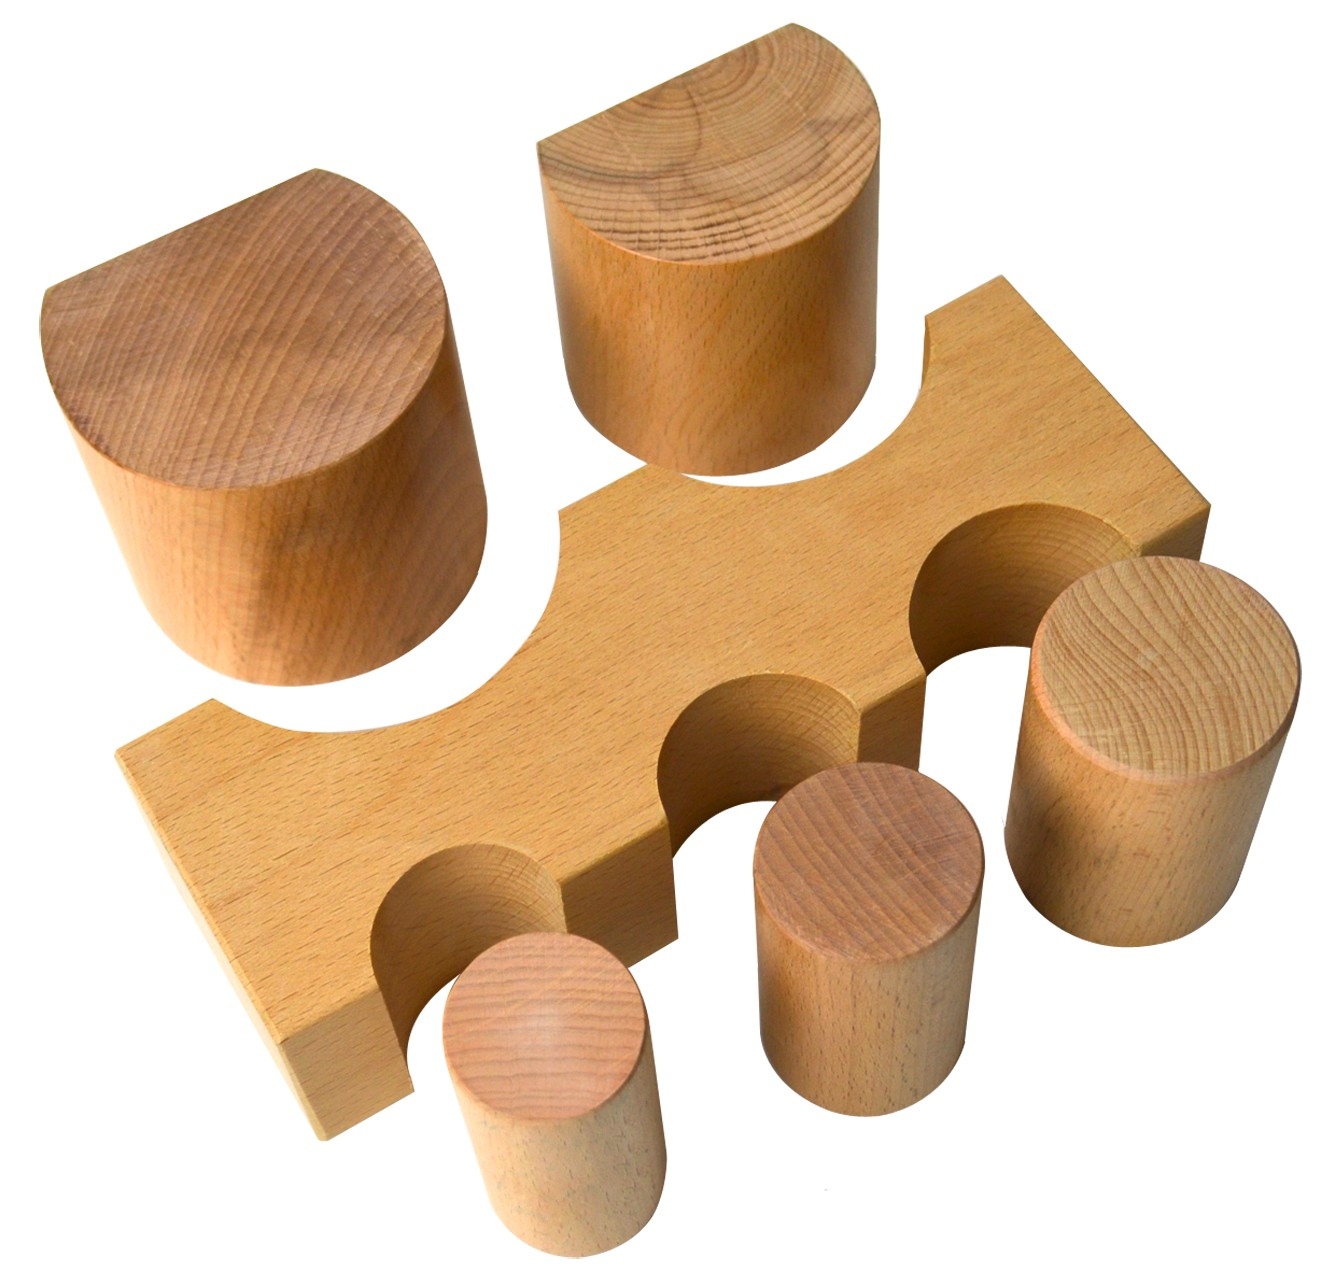 6 Piece Wooden Forming Block Dapping Set